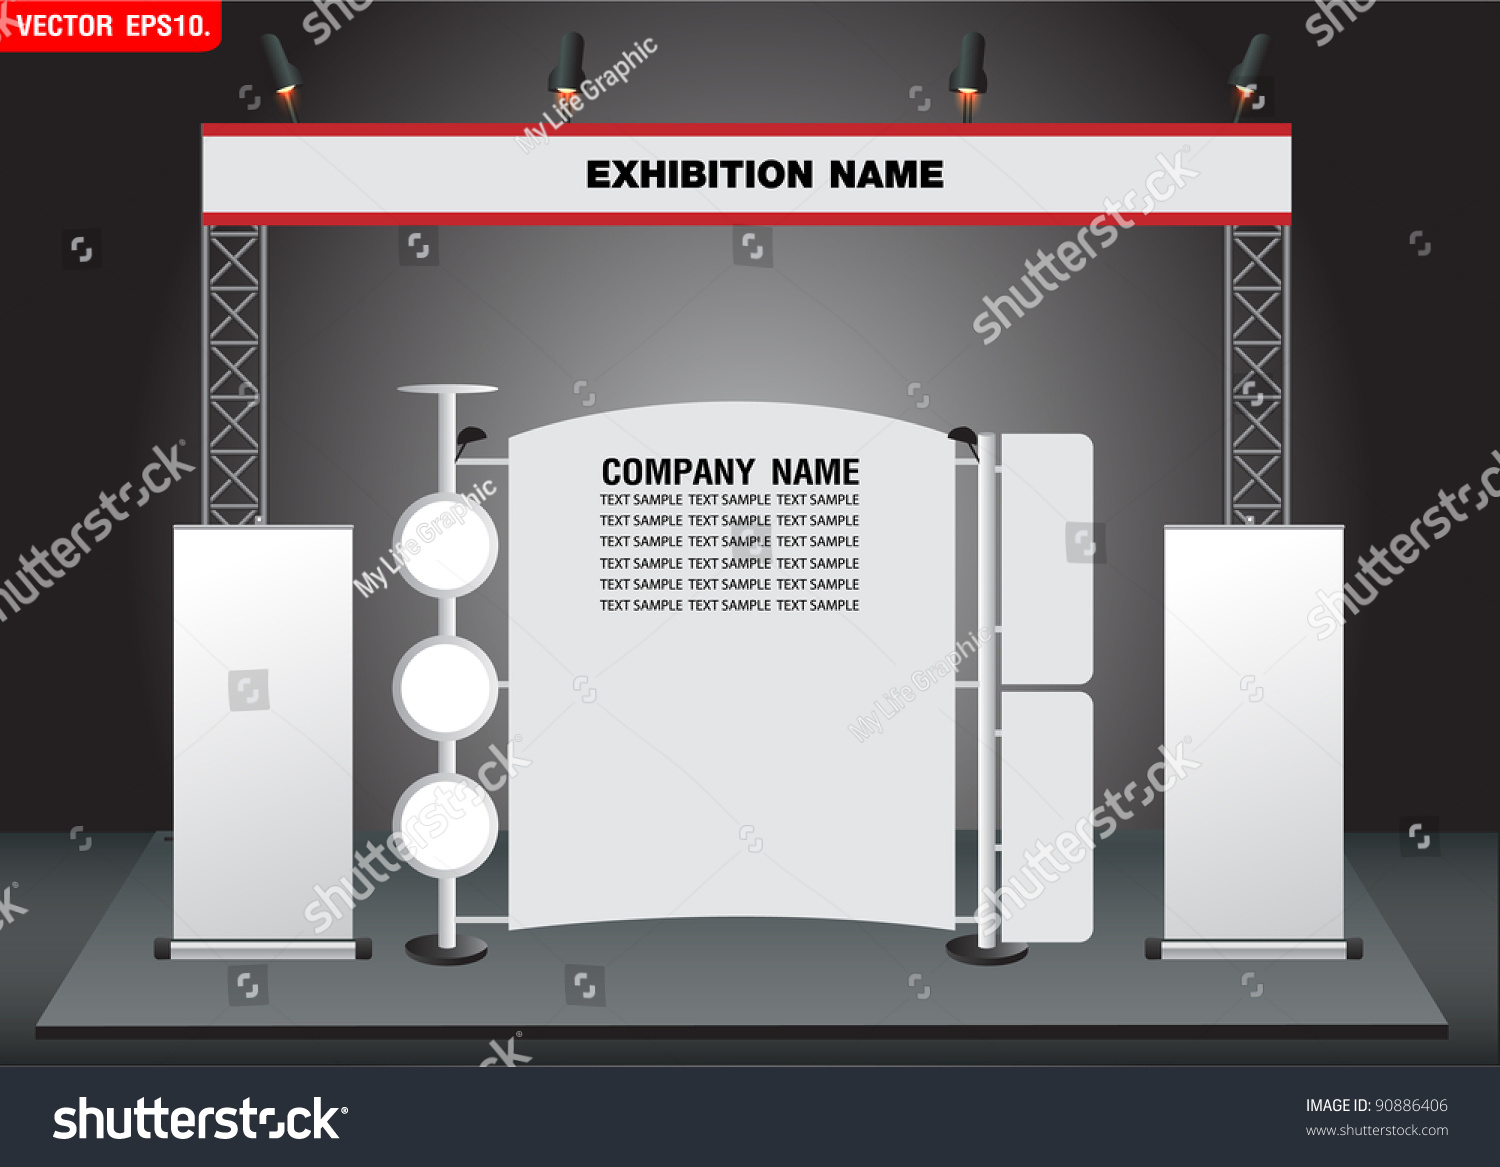 Exhibition Stand Design Vector : Blank trade exhibition stand and roll up banner vector